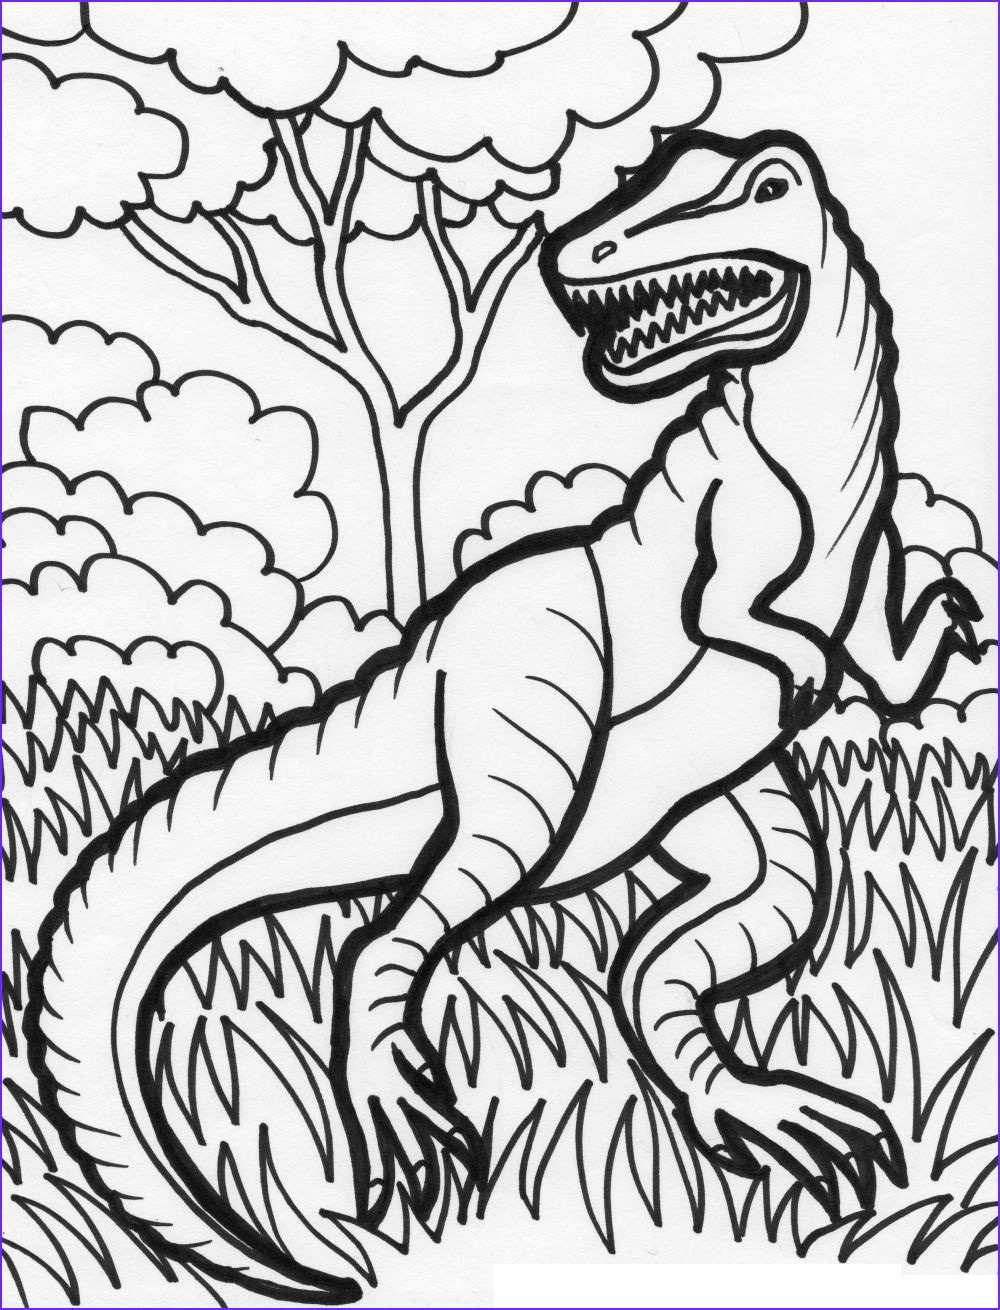 Dino Coloring Pages Cool Images Free Printable Dinosaur Coloring Pages for Kids